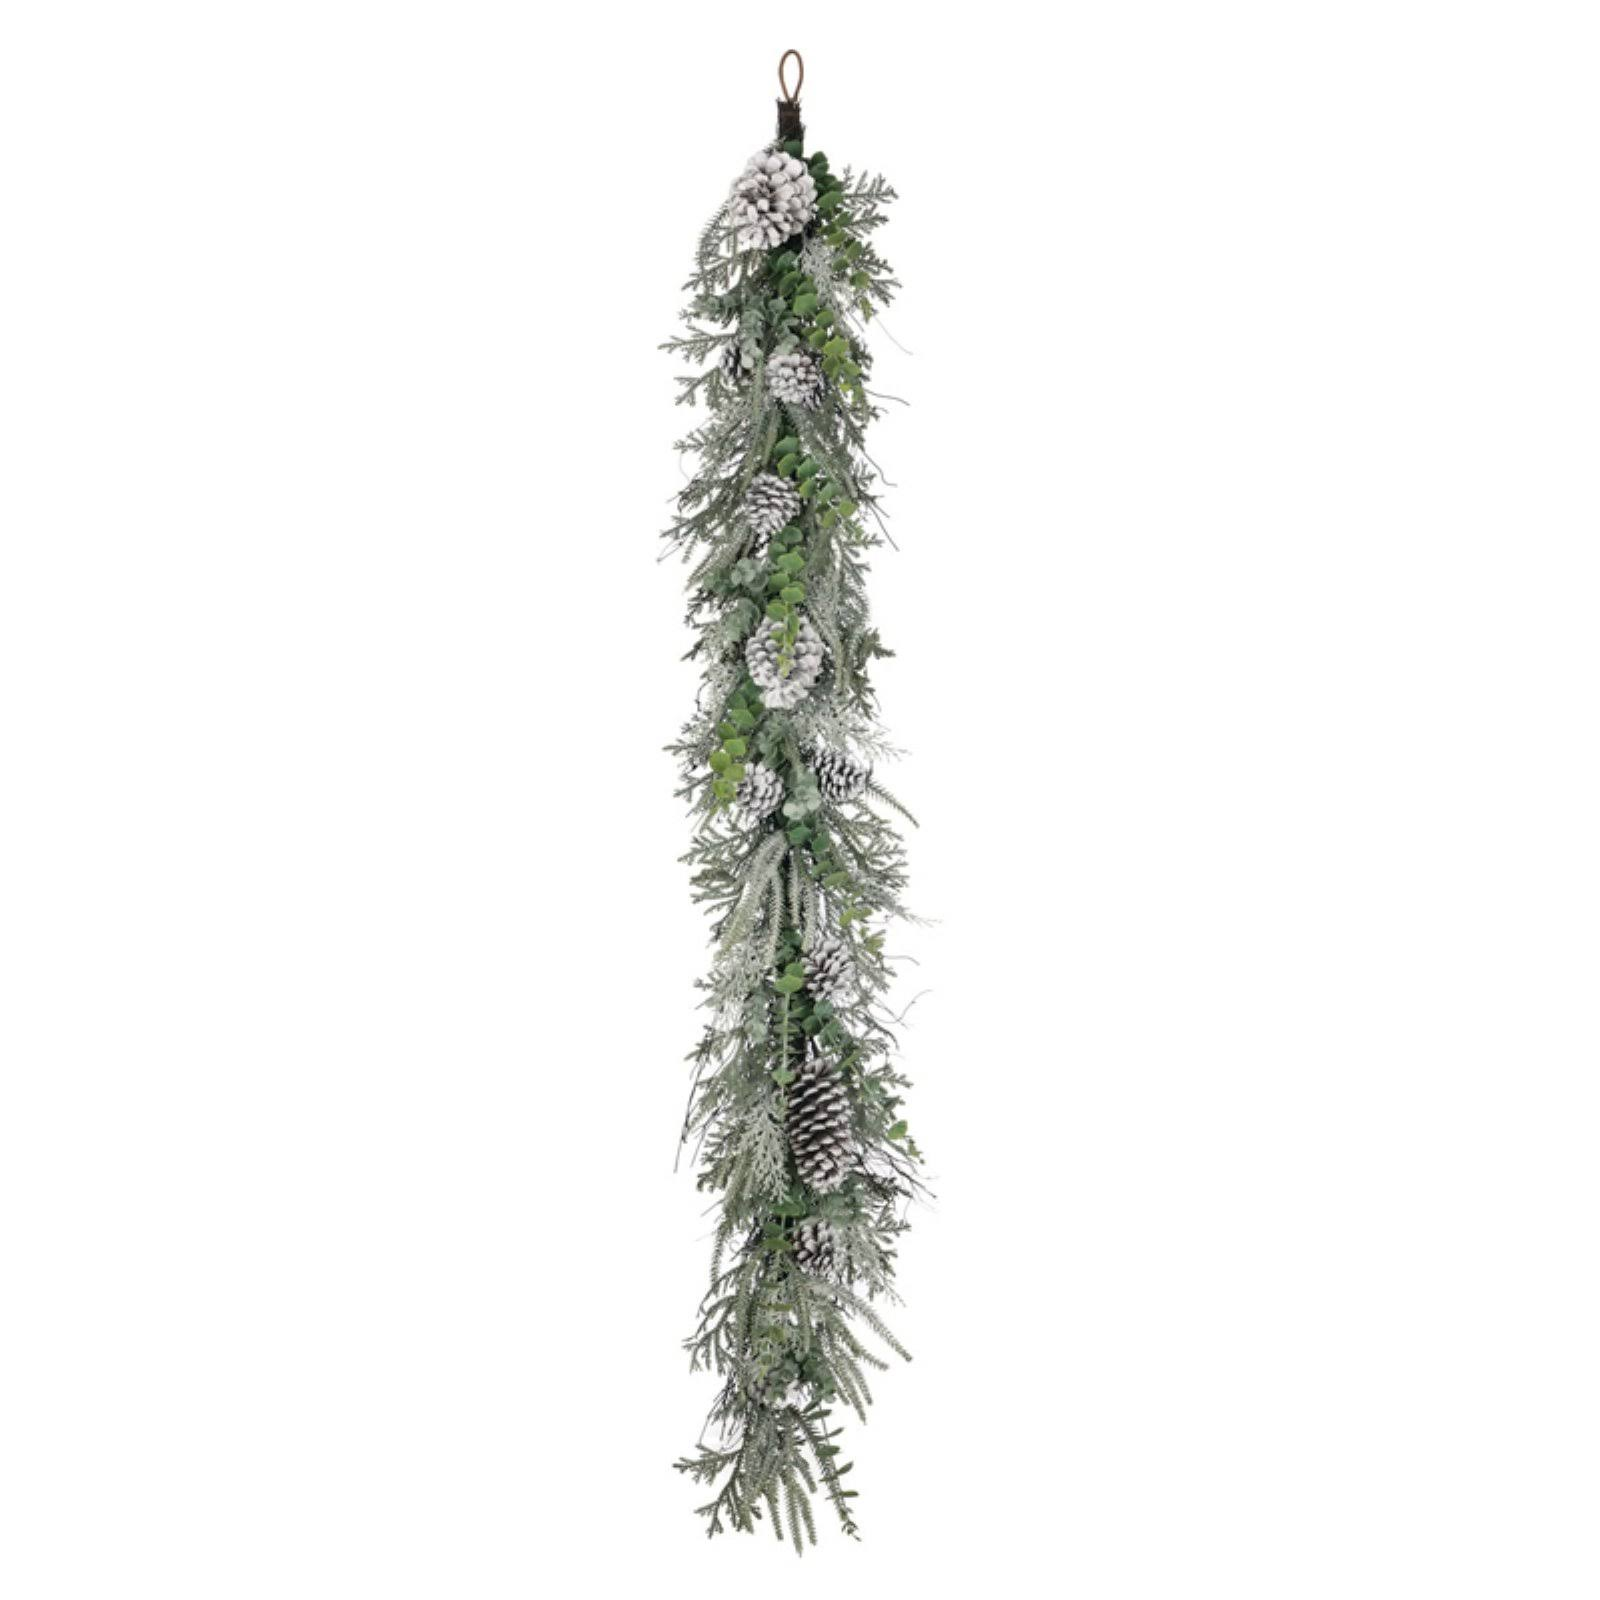 Sullivans 5 ft. Flocked Pine Foliage and Cone Garland